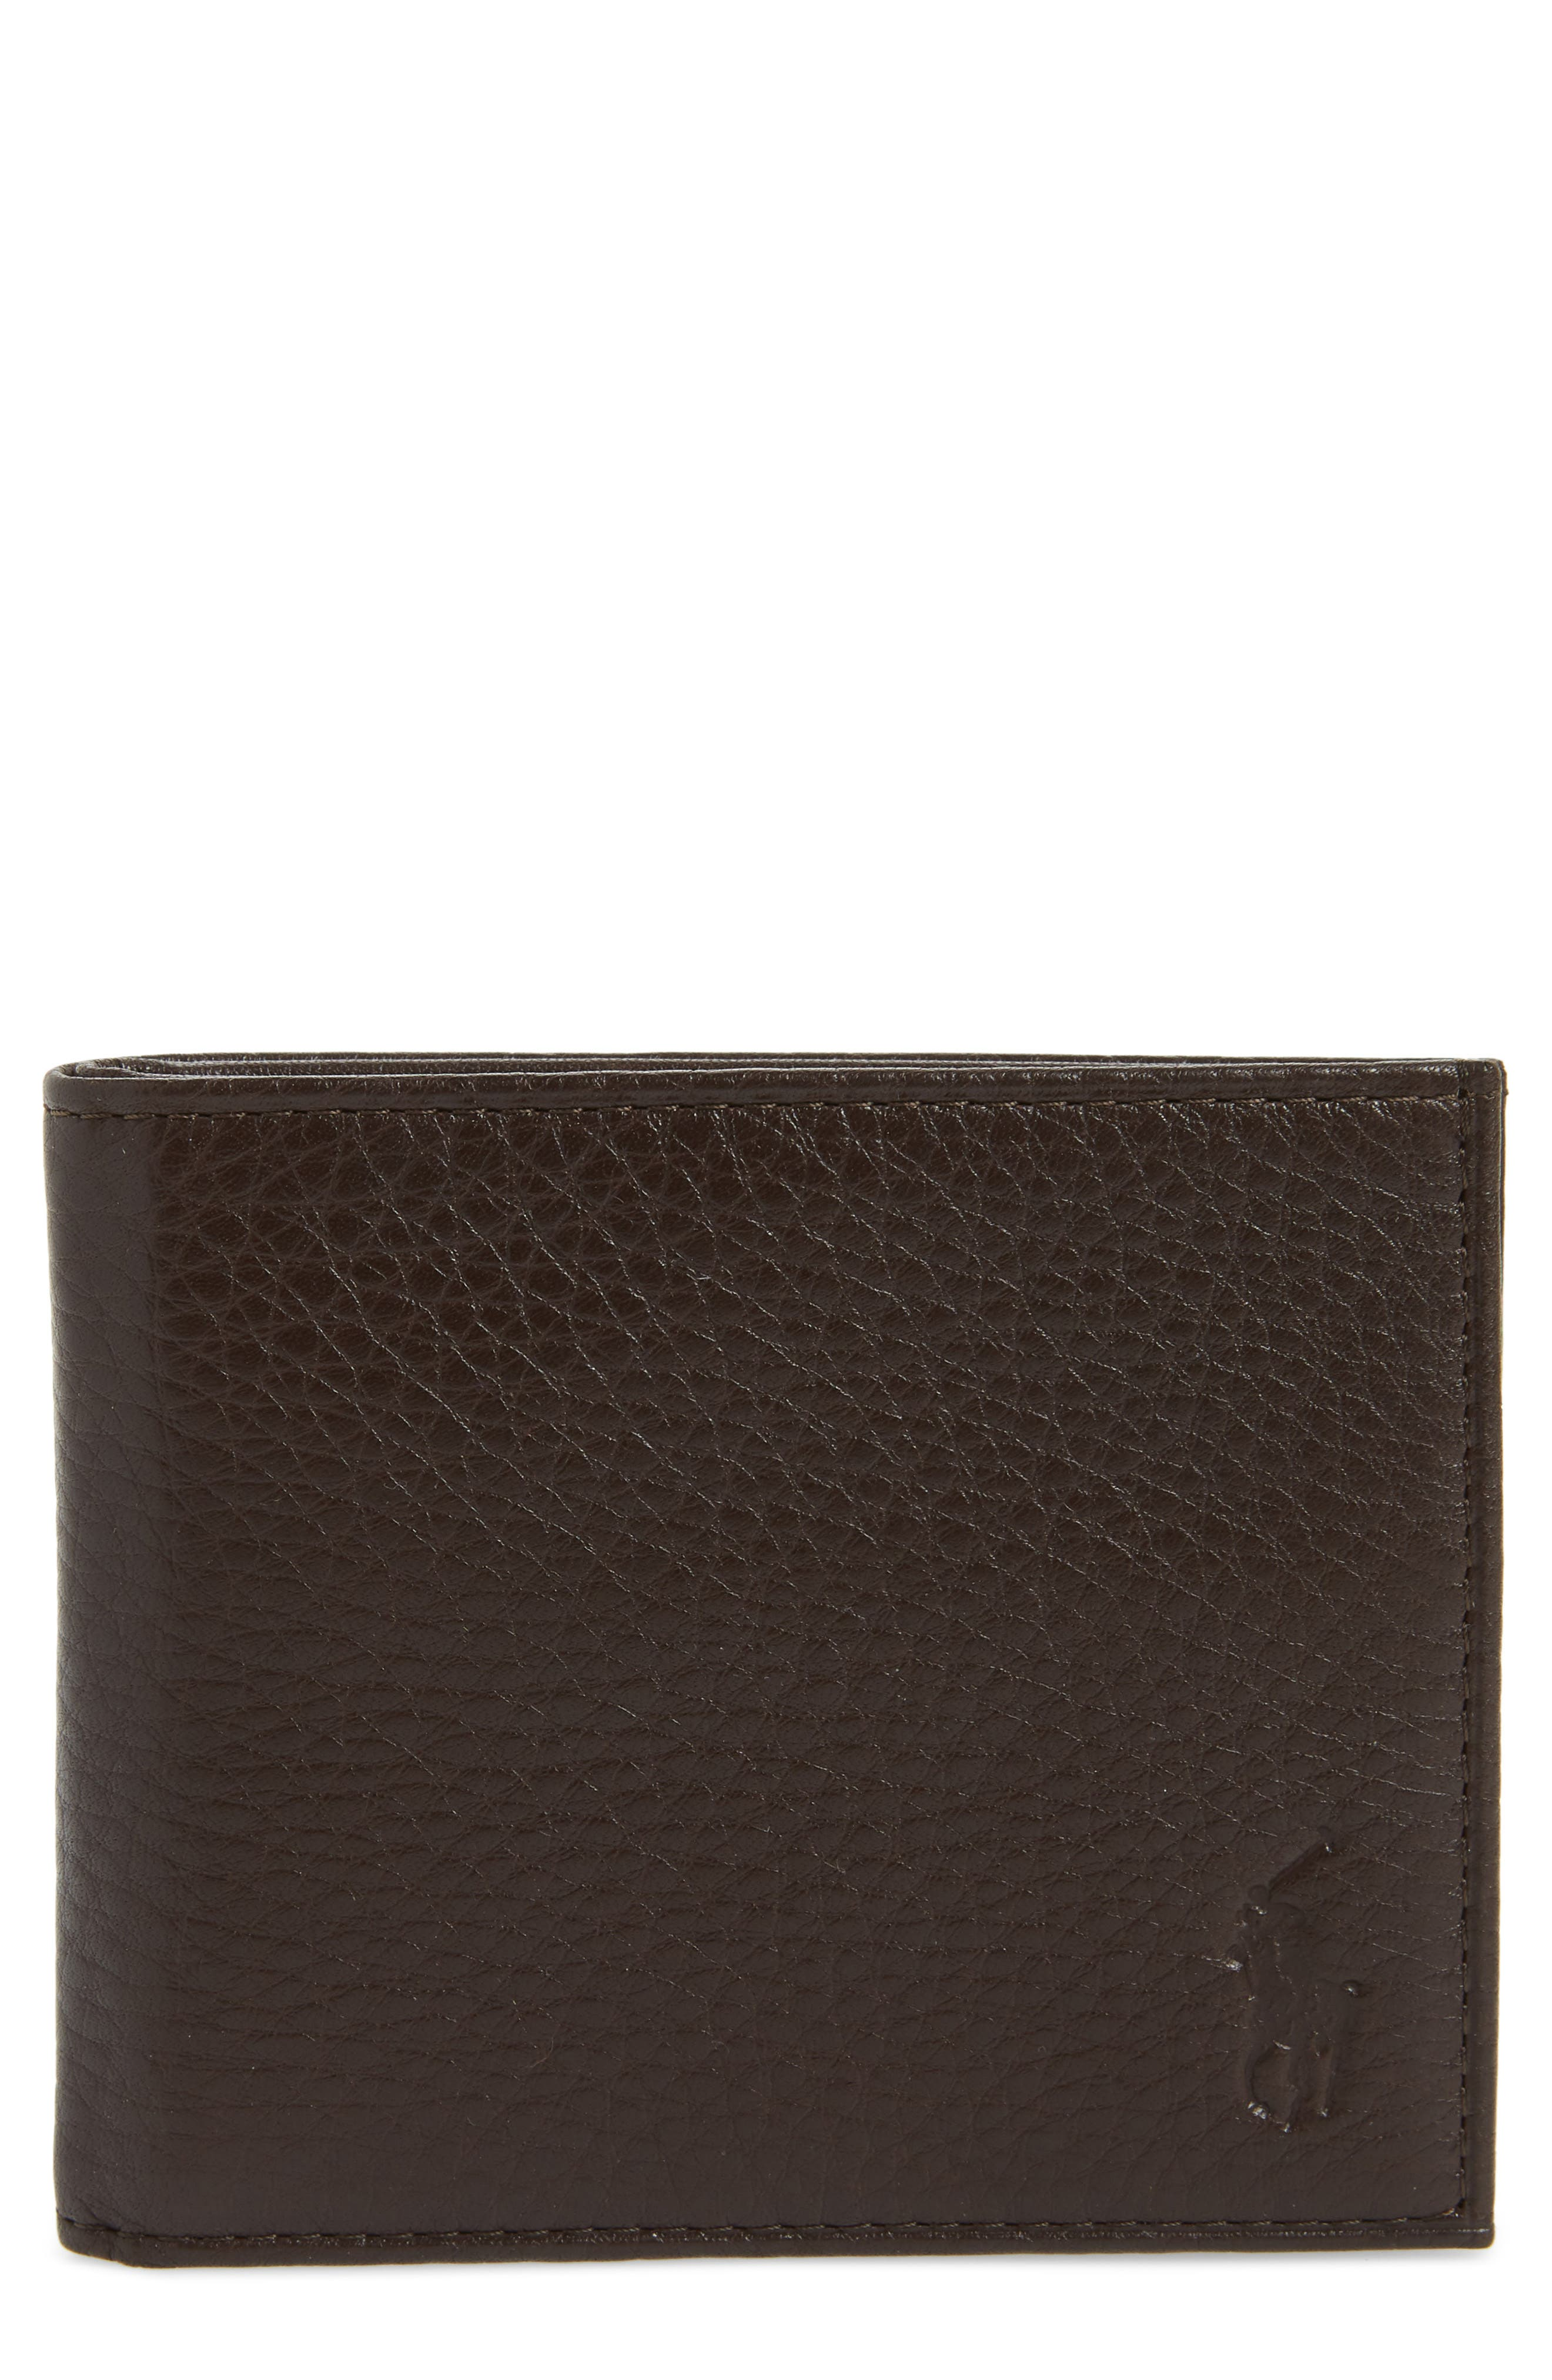 Bifold Leather Wallet,                             Main thumbnail 1, color,                             BROWN